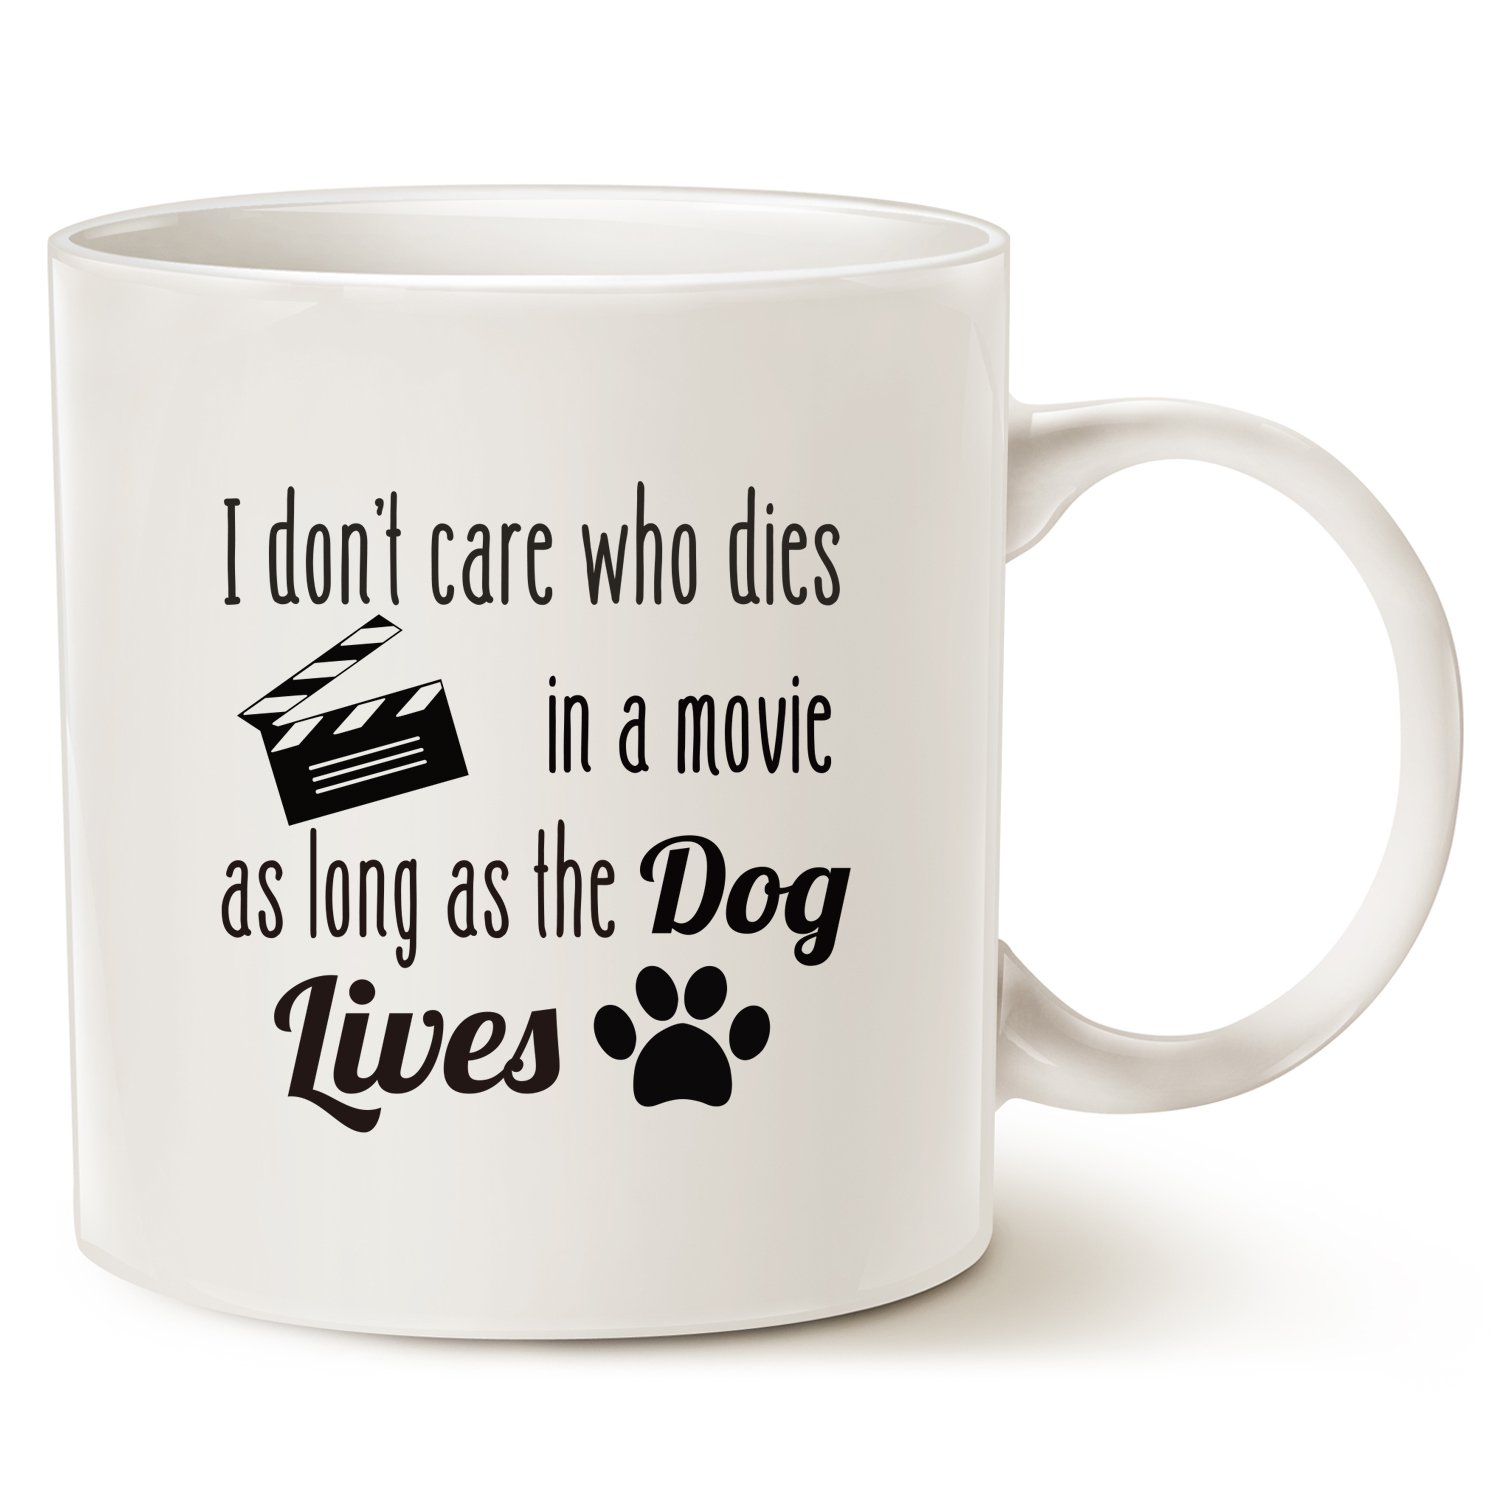 MAUAG Funny Dog Coffee Mug for Dog Lovers, I Don't Care Who Dies in a Movie, as Long as The Dog Lives Ceramic Fun Cute Dog Cup White, 11 Oz